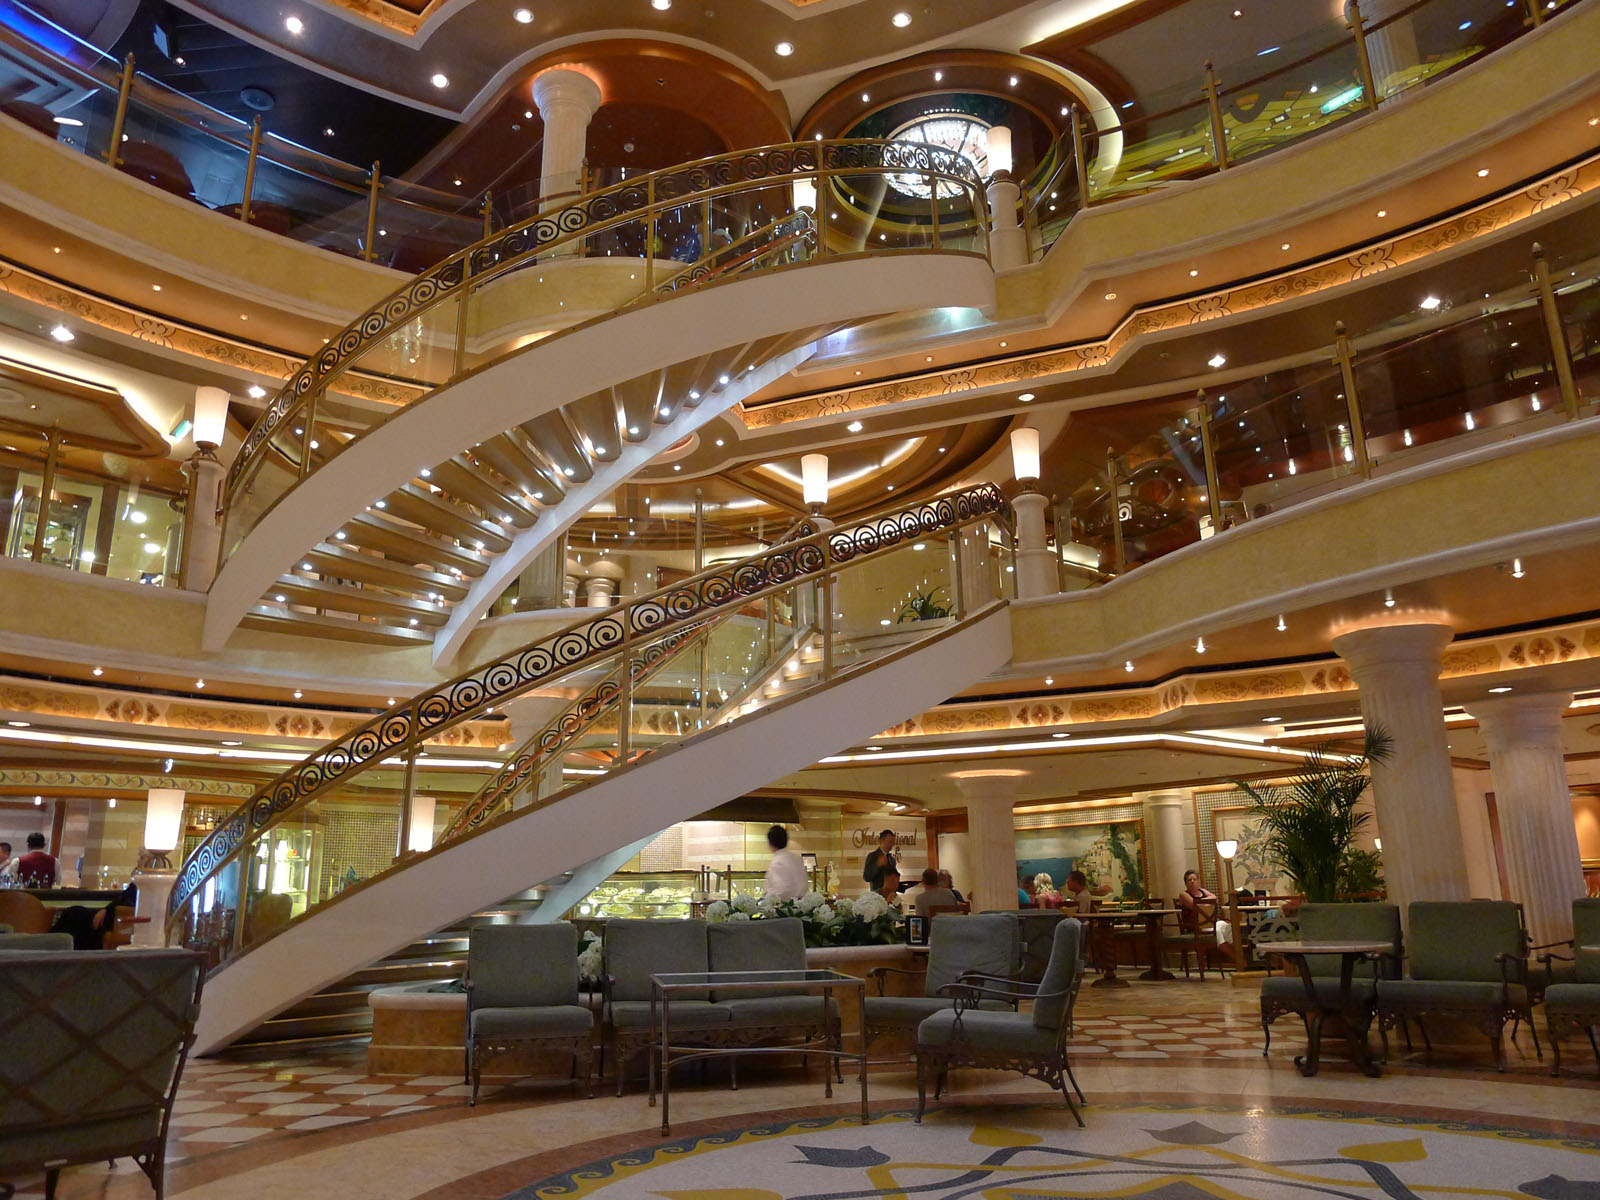 Main gallery on the Ruby Princess